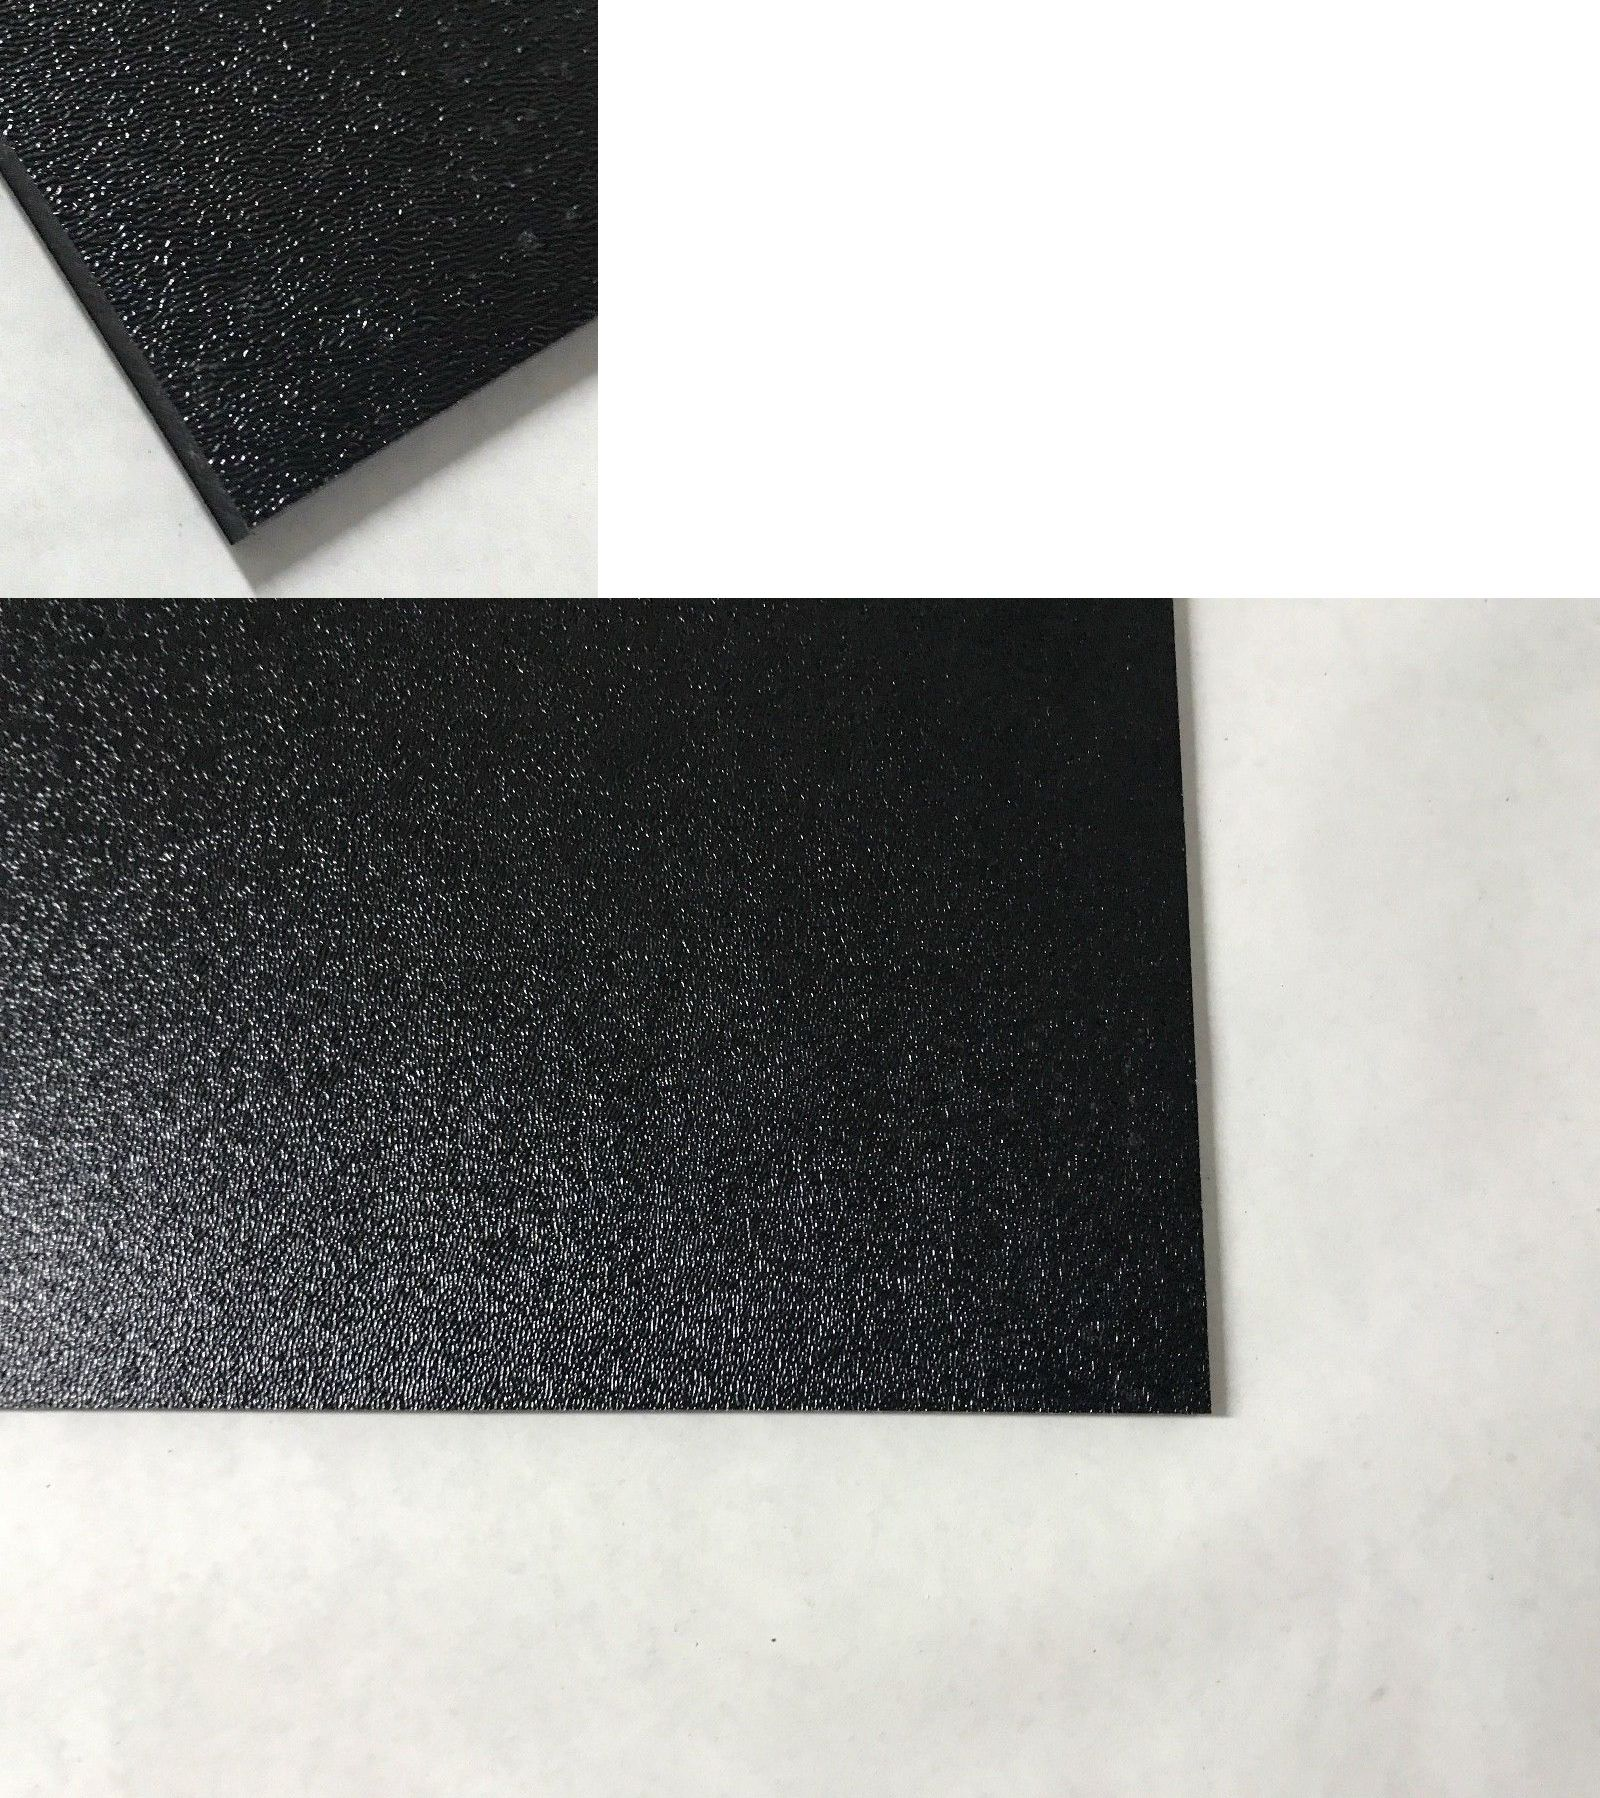 Details About Abs Black Plastic Sheet 1 16 060 You Pick The Size Vacuum Forming Rc Body Plastic Sheets Vacuum Forming Abs